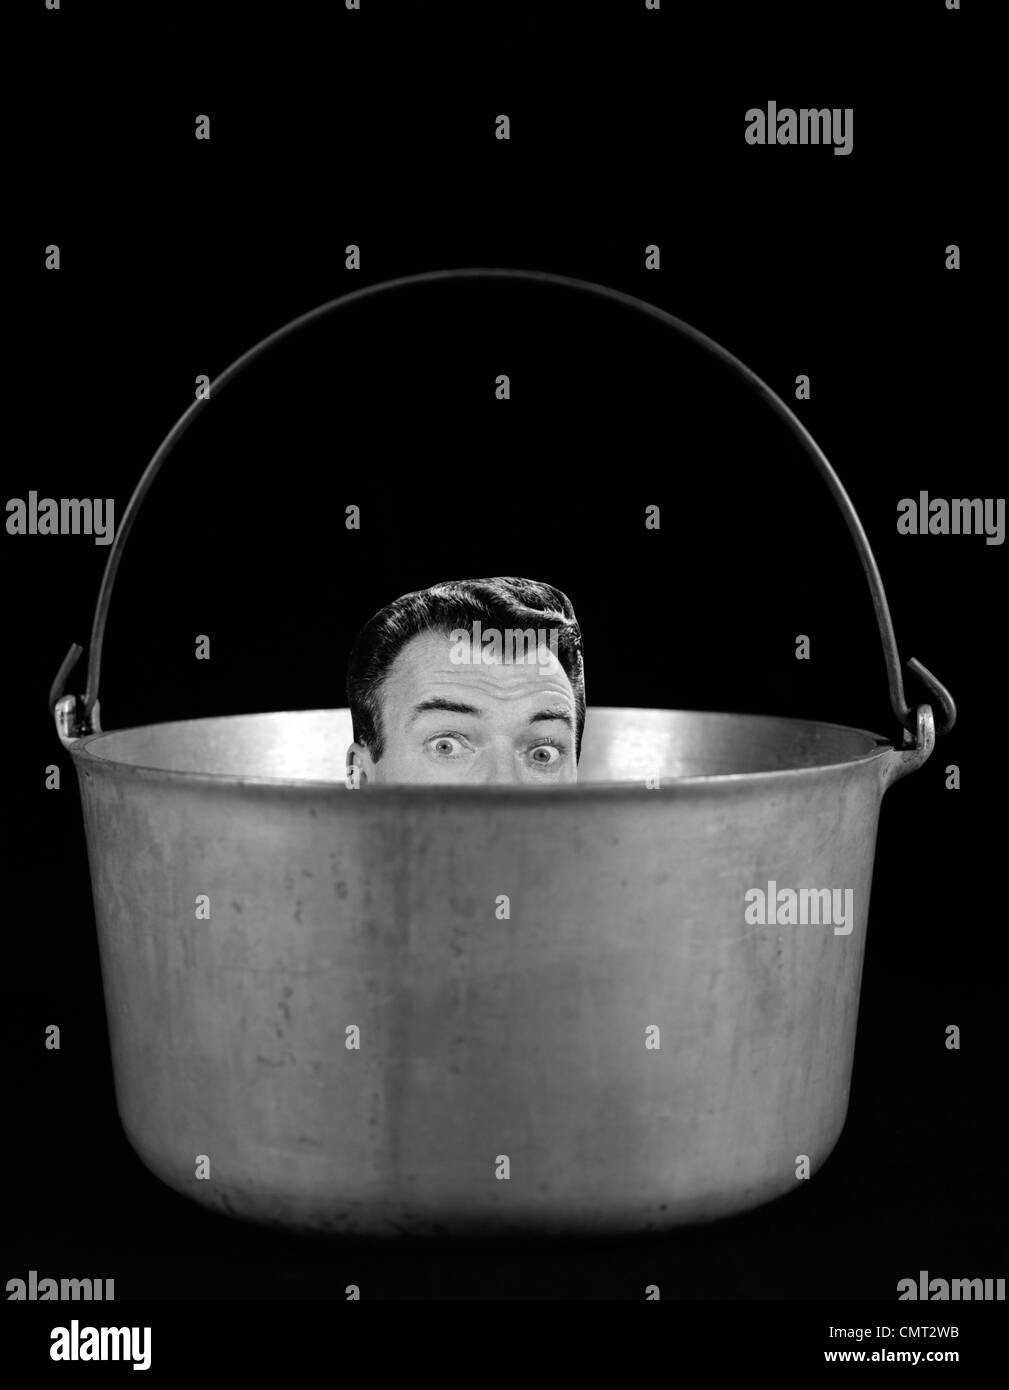 1950s 1960s SYMBOLIC MONTAGE PORTRAIT MAN IN THE SOUP LOOKING WIDE EYED FROM INSIDE THE KETTLE Stock Photo